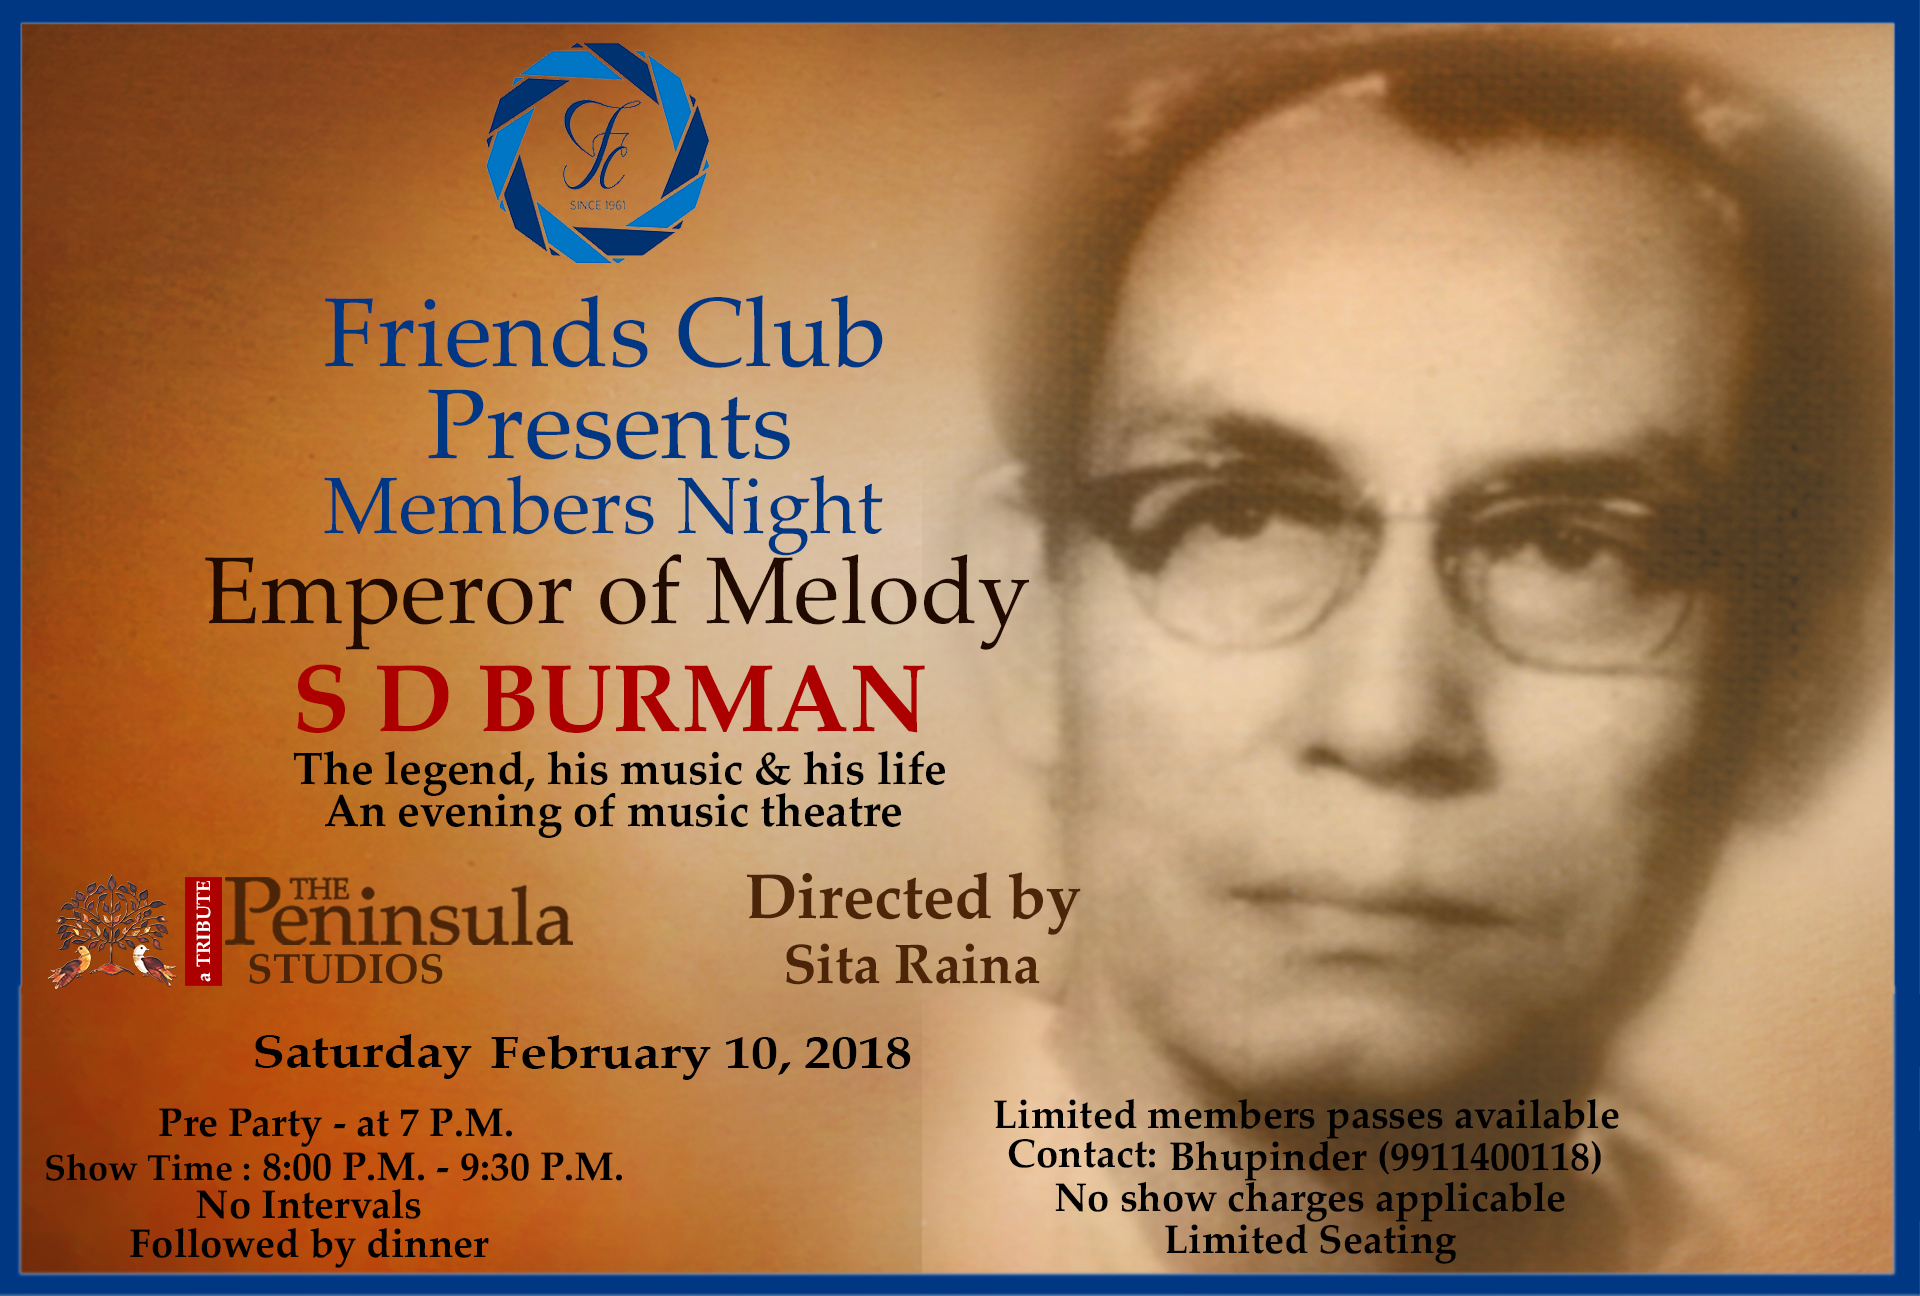 SD BURMAN 10 FEB